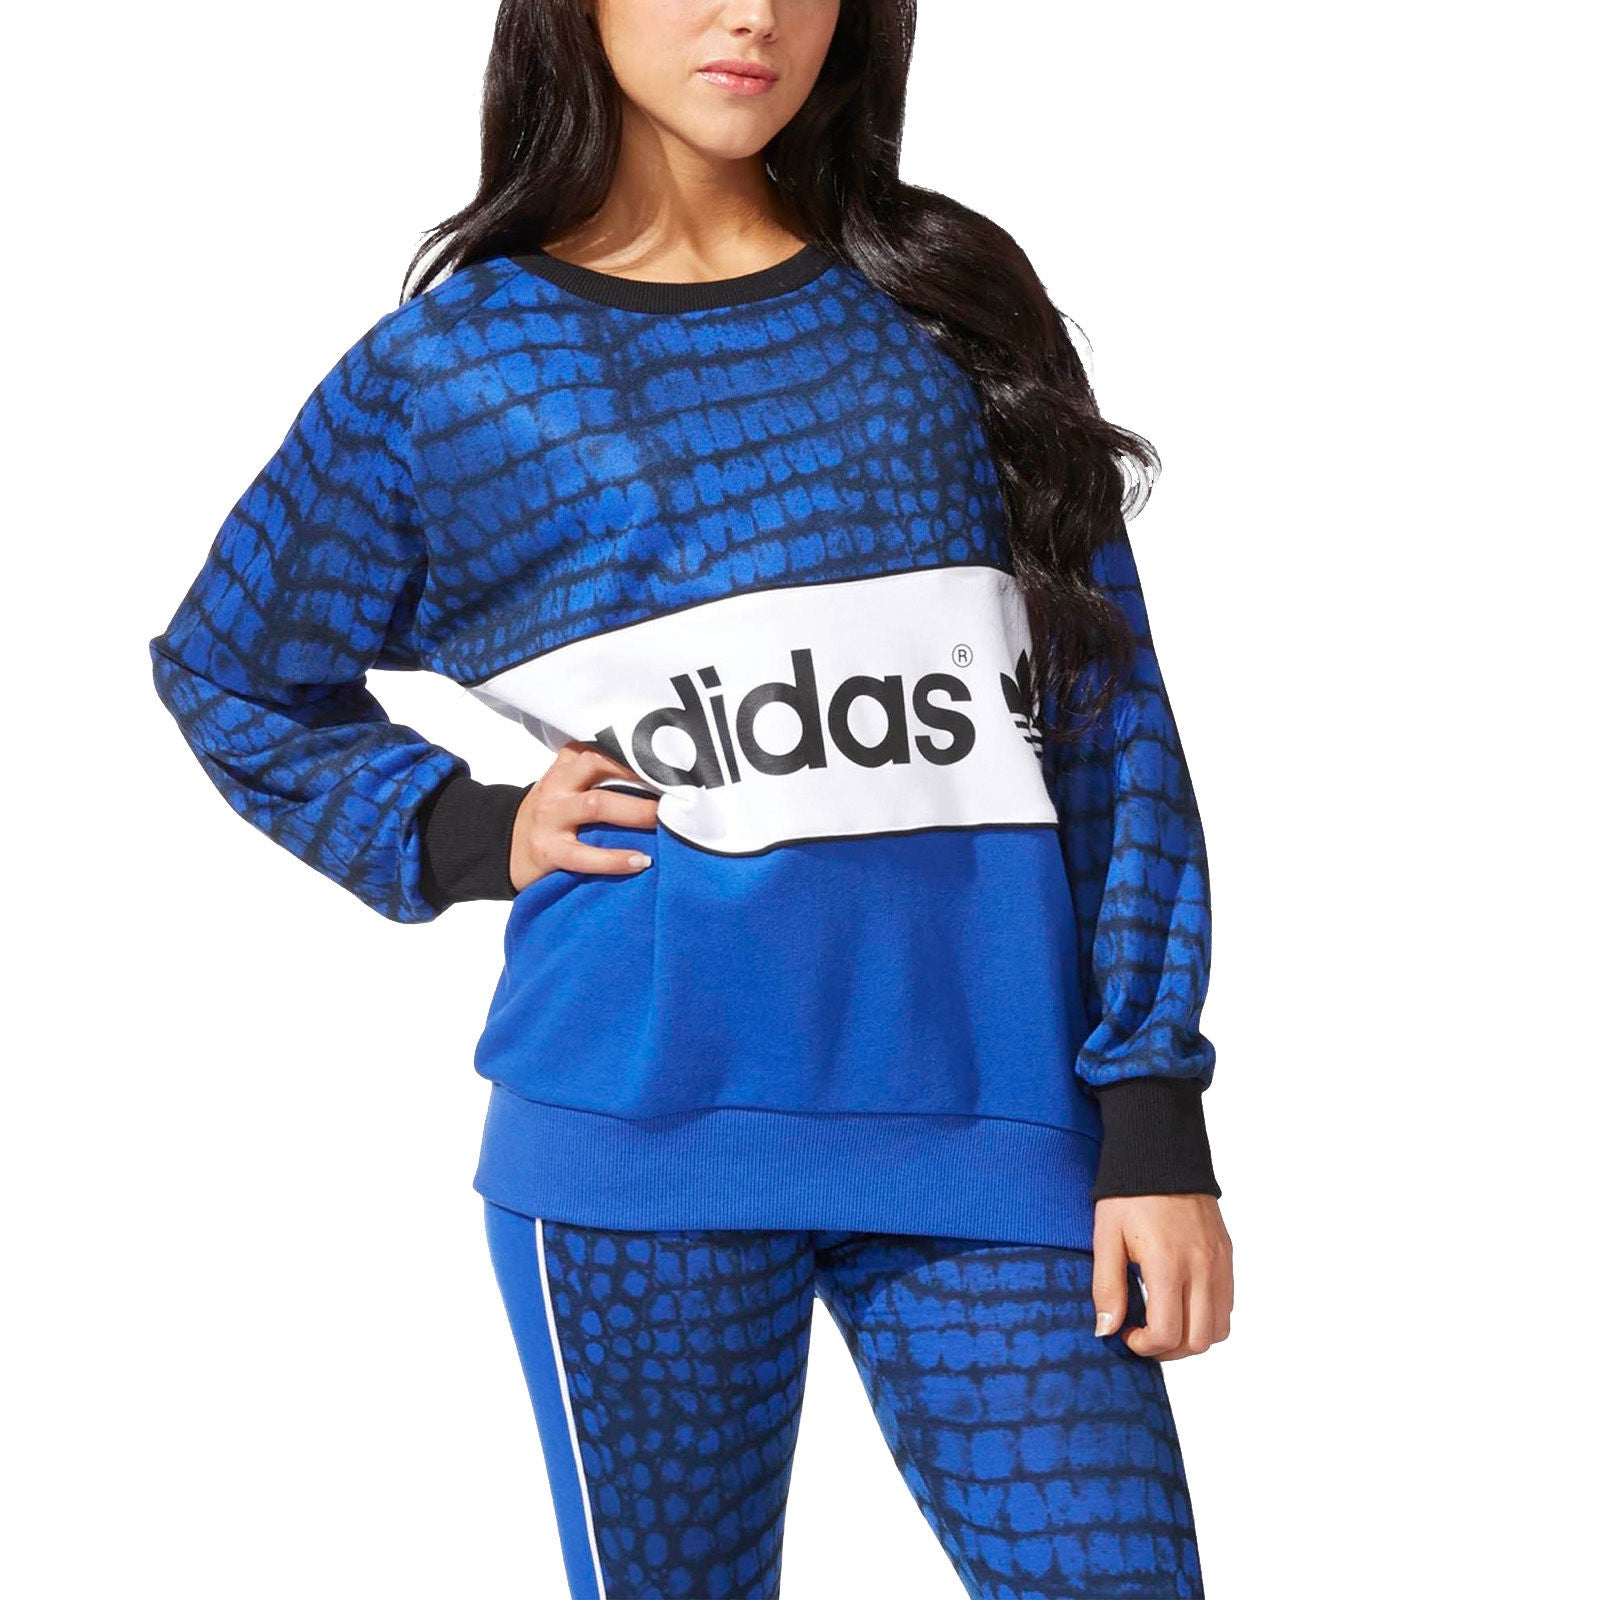 adidas Originals Womens New York City Logo Sweatshirt Jumper Sweater Top Blue S19899